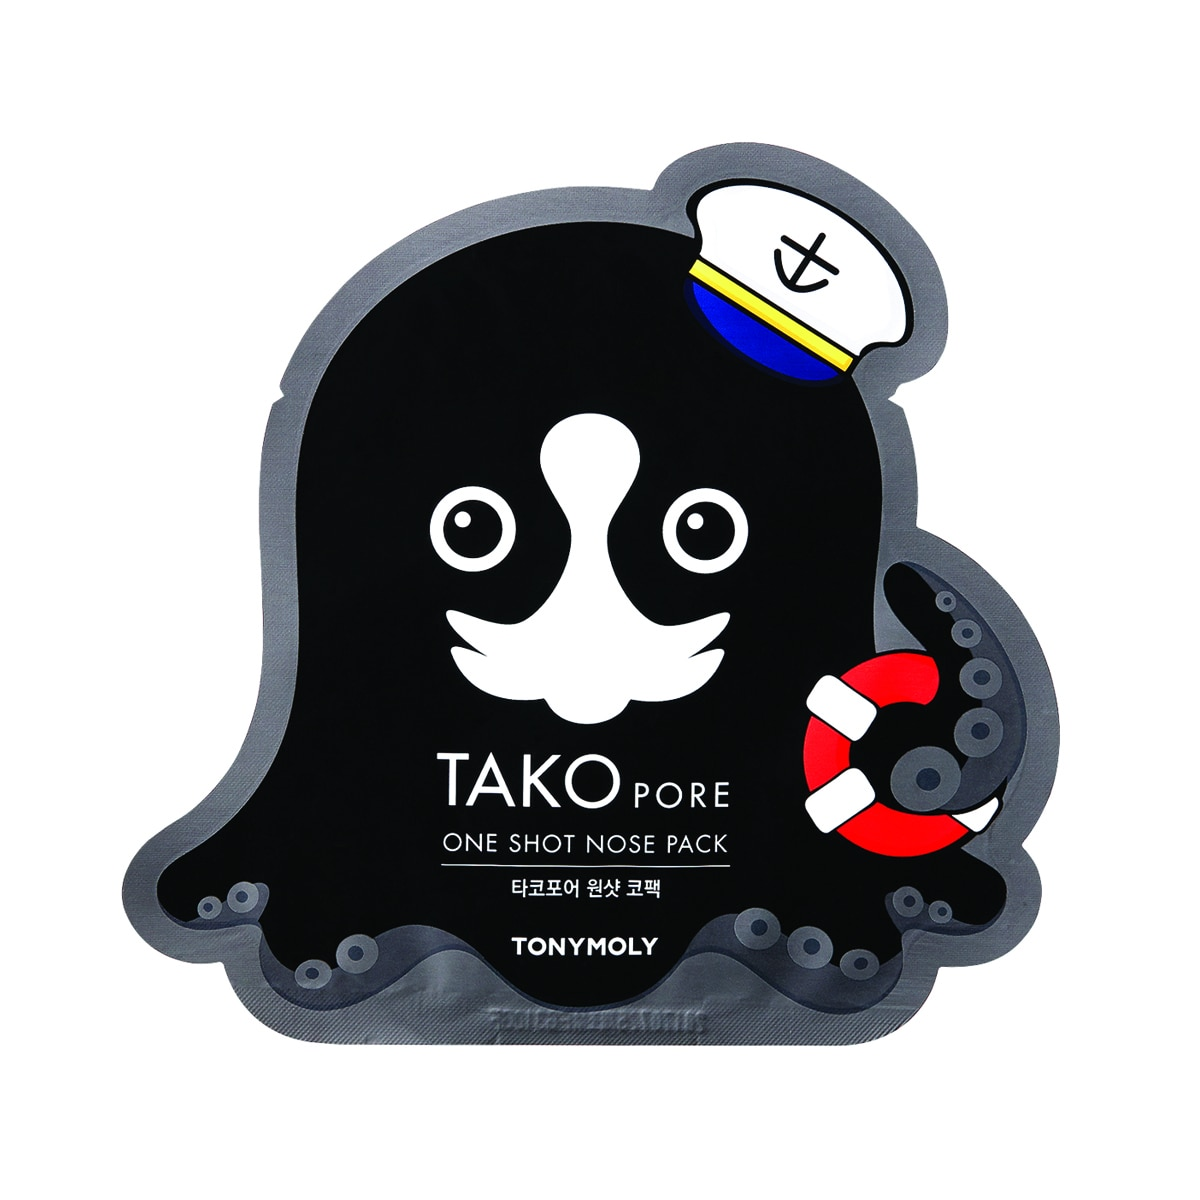 TAKOPORE ONE SHOT NOSE PACK